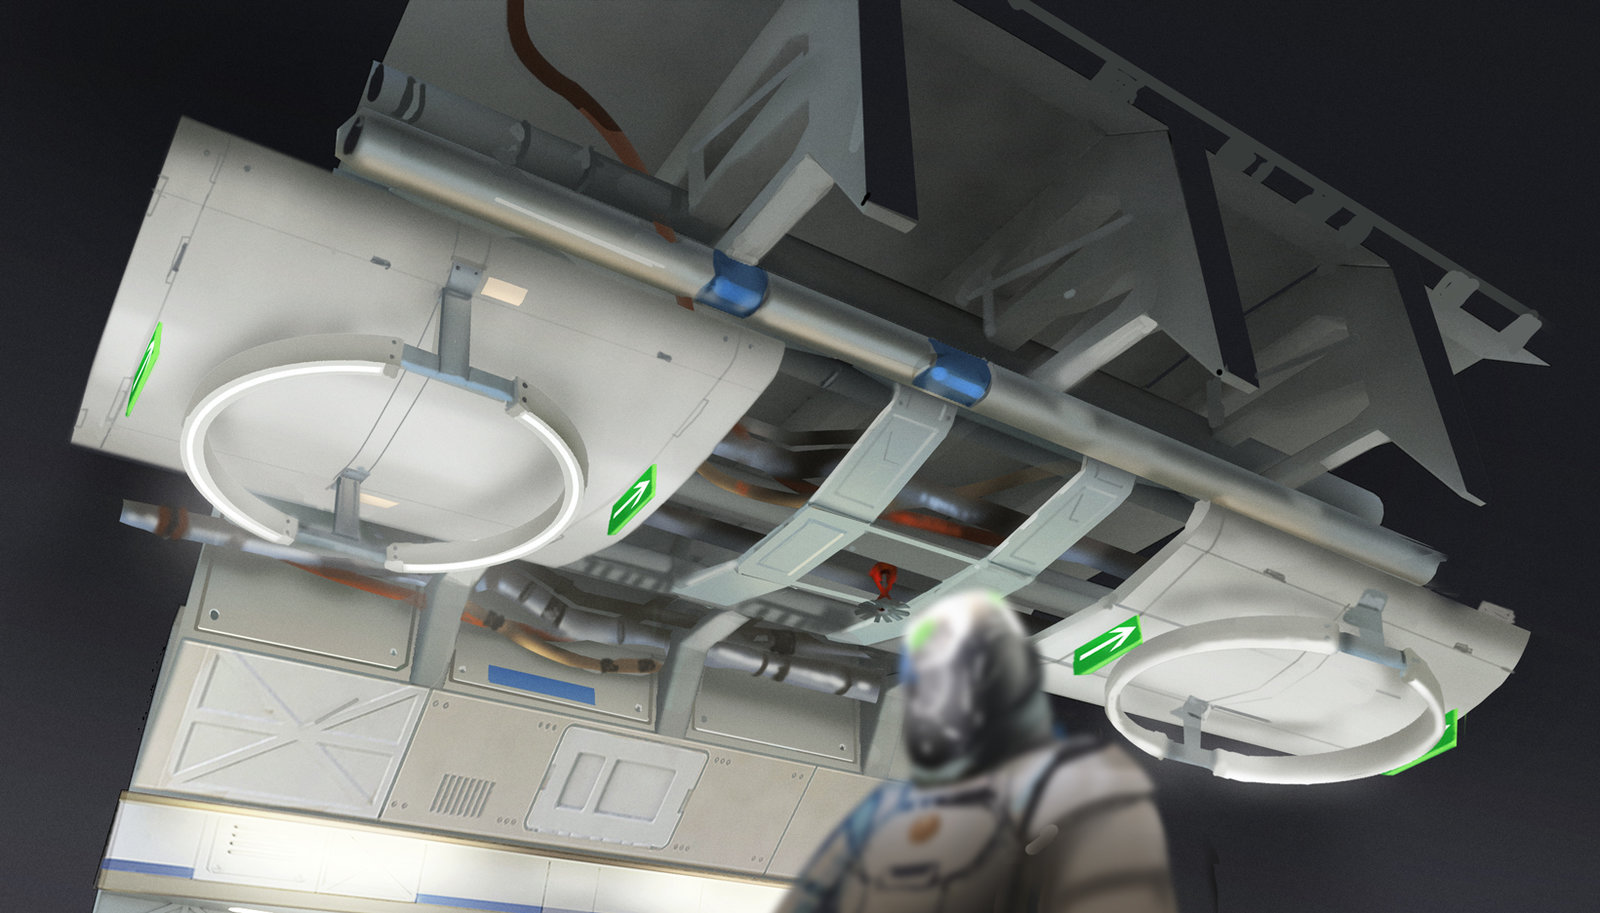 Mars Station - Corridor Ceiling and Lighting